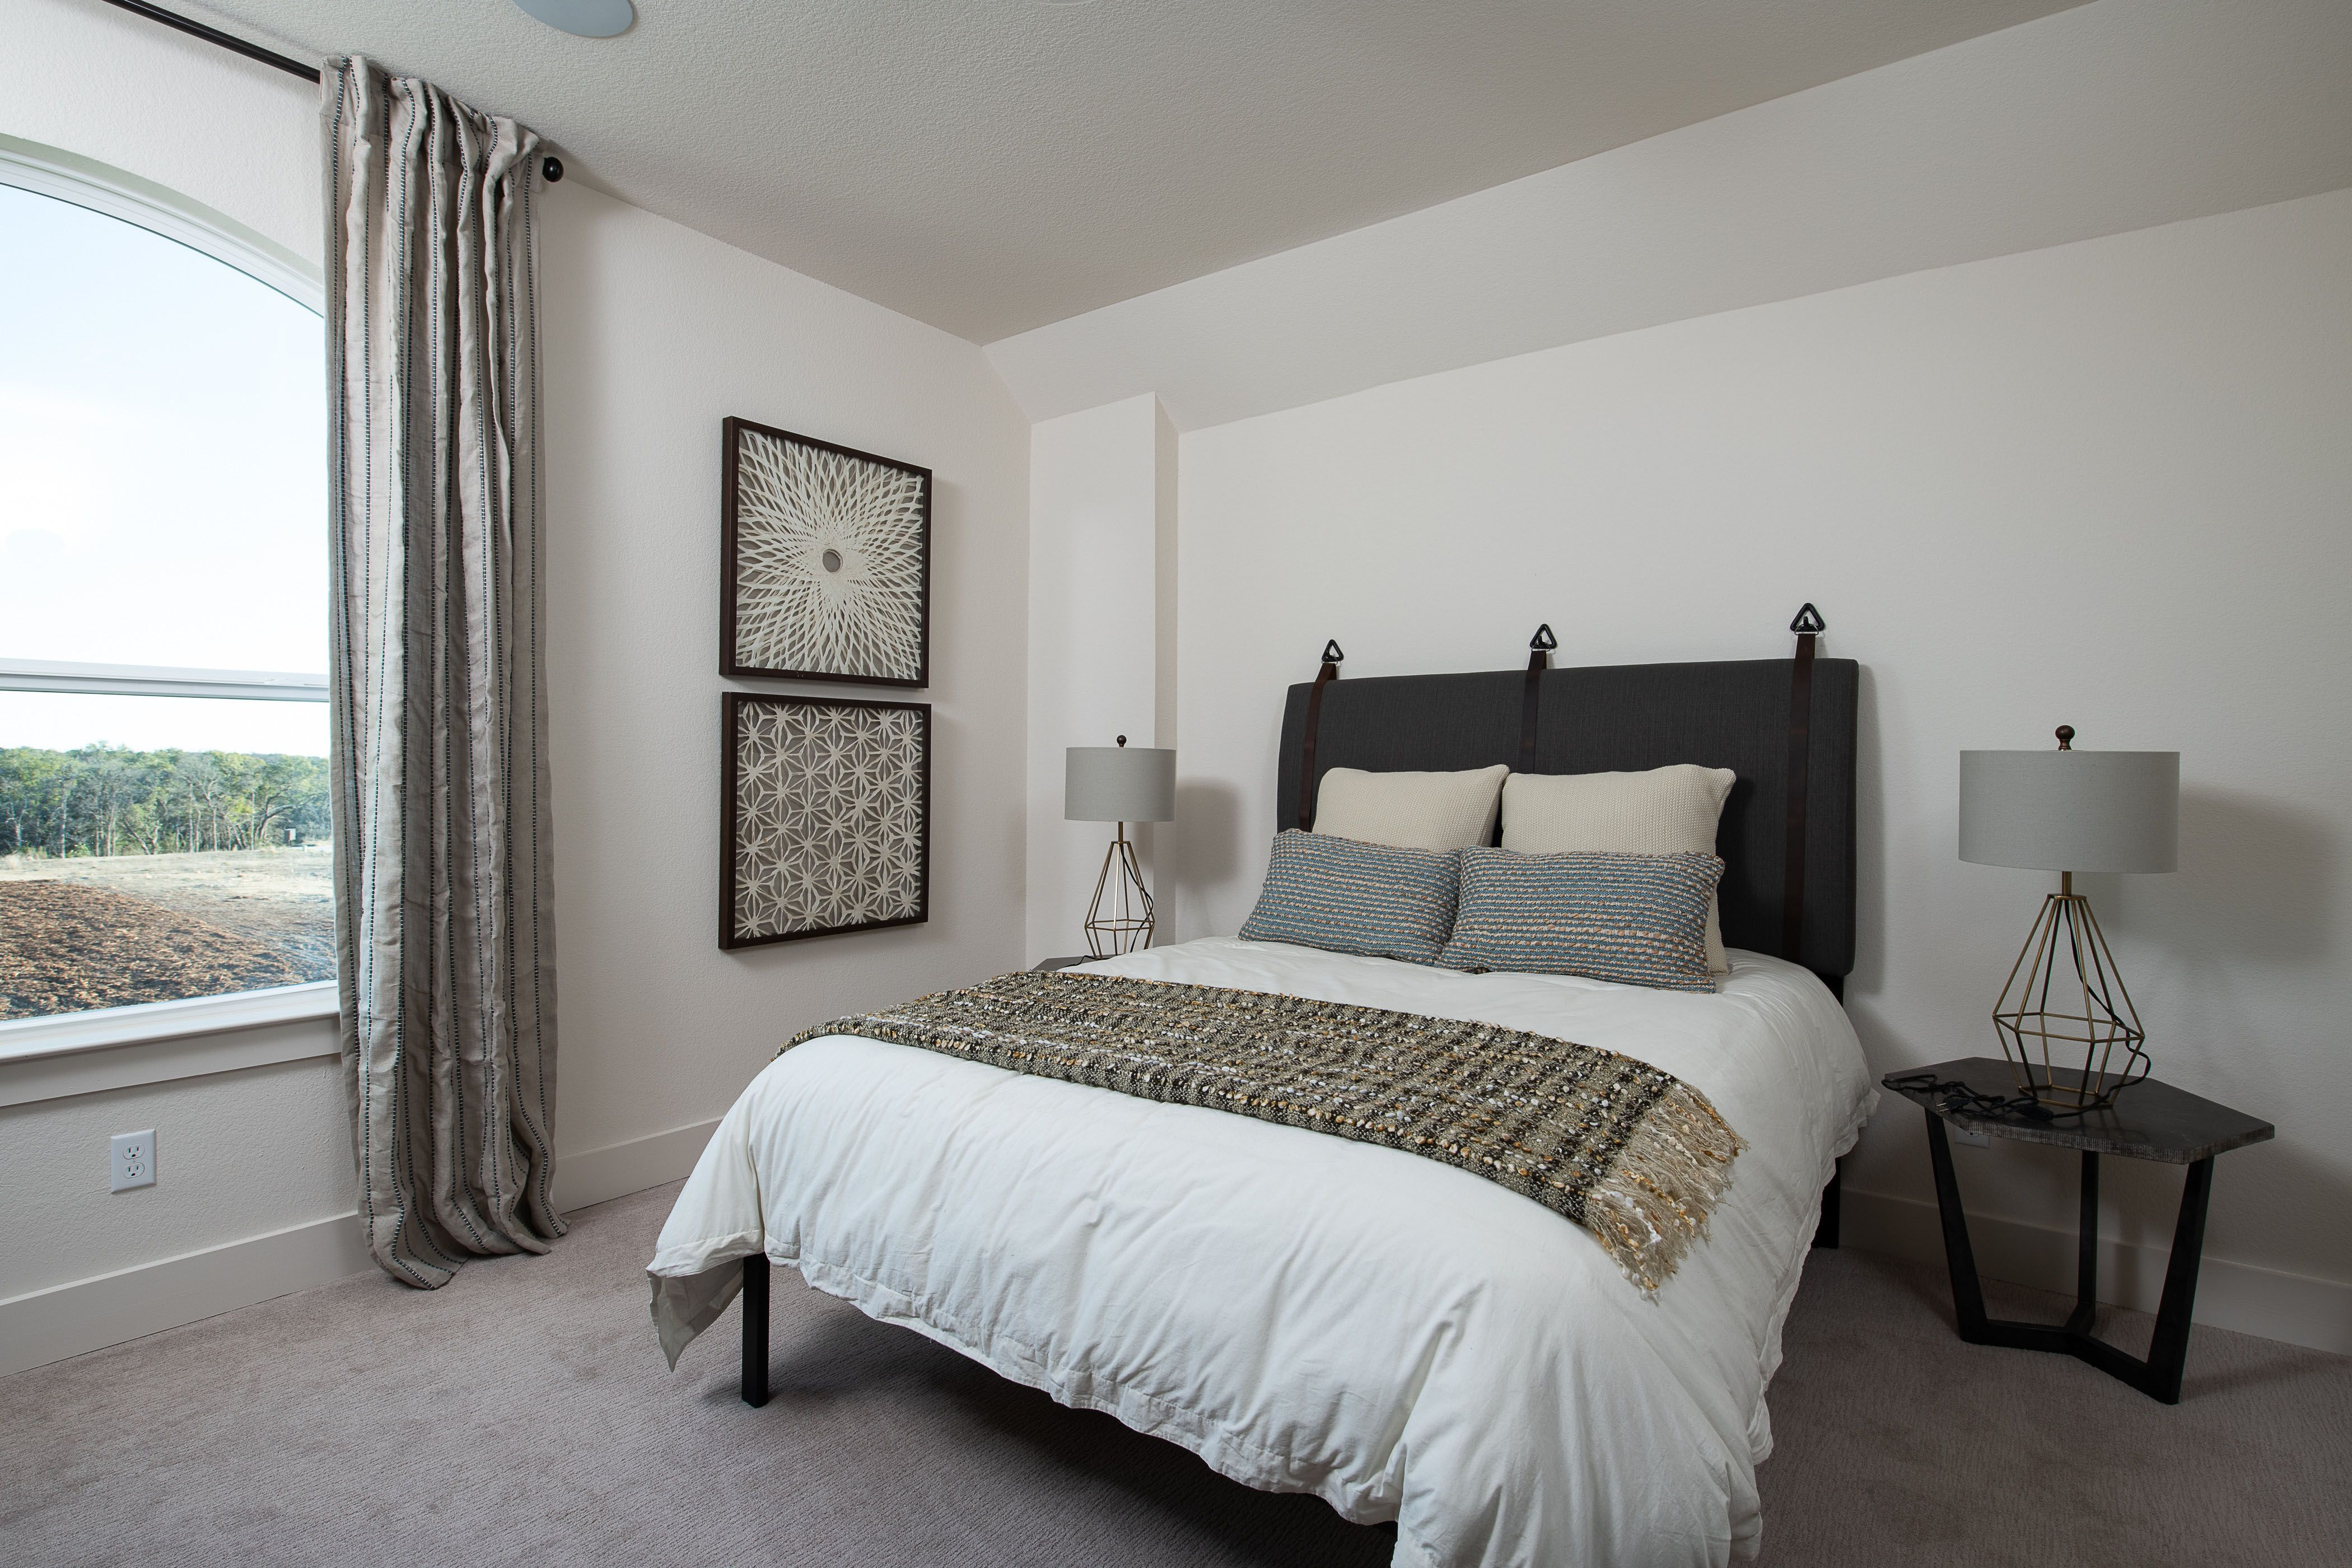 Bedroom featured in the Westlake By Ashton Woods in Austin, TX